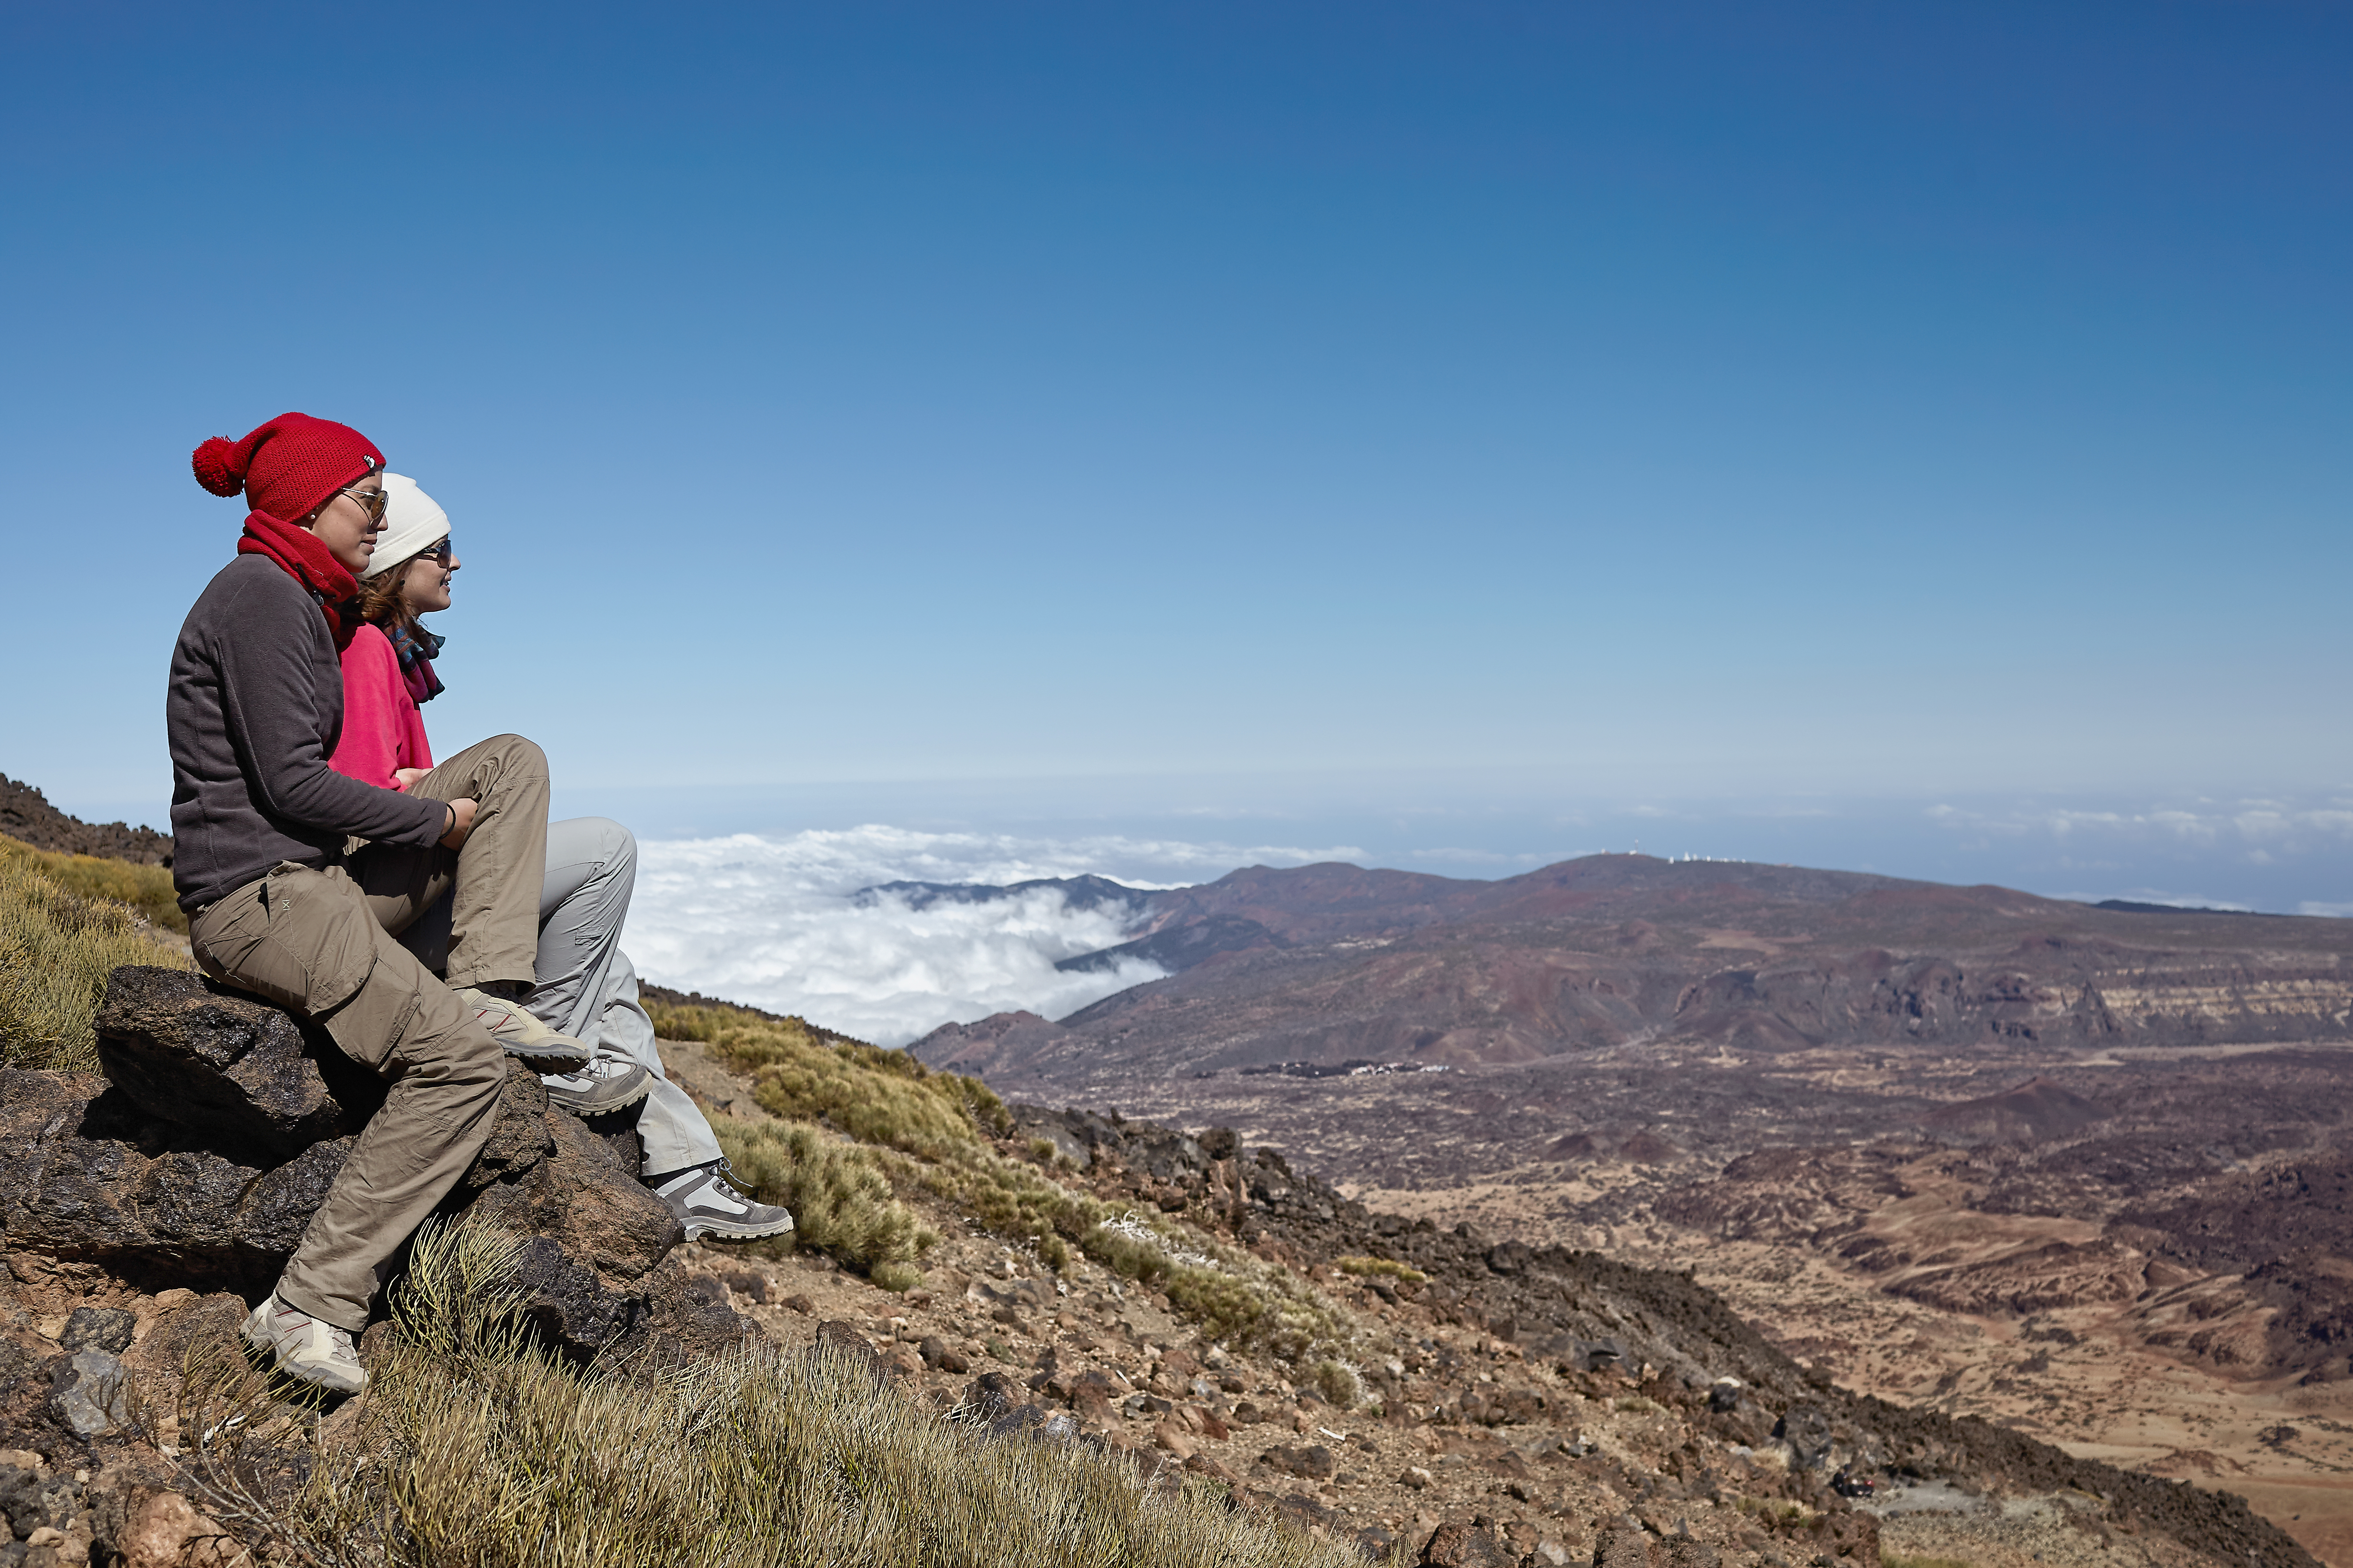 Hikers admiring the landscape from the top of Mount Teide